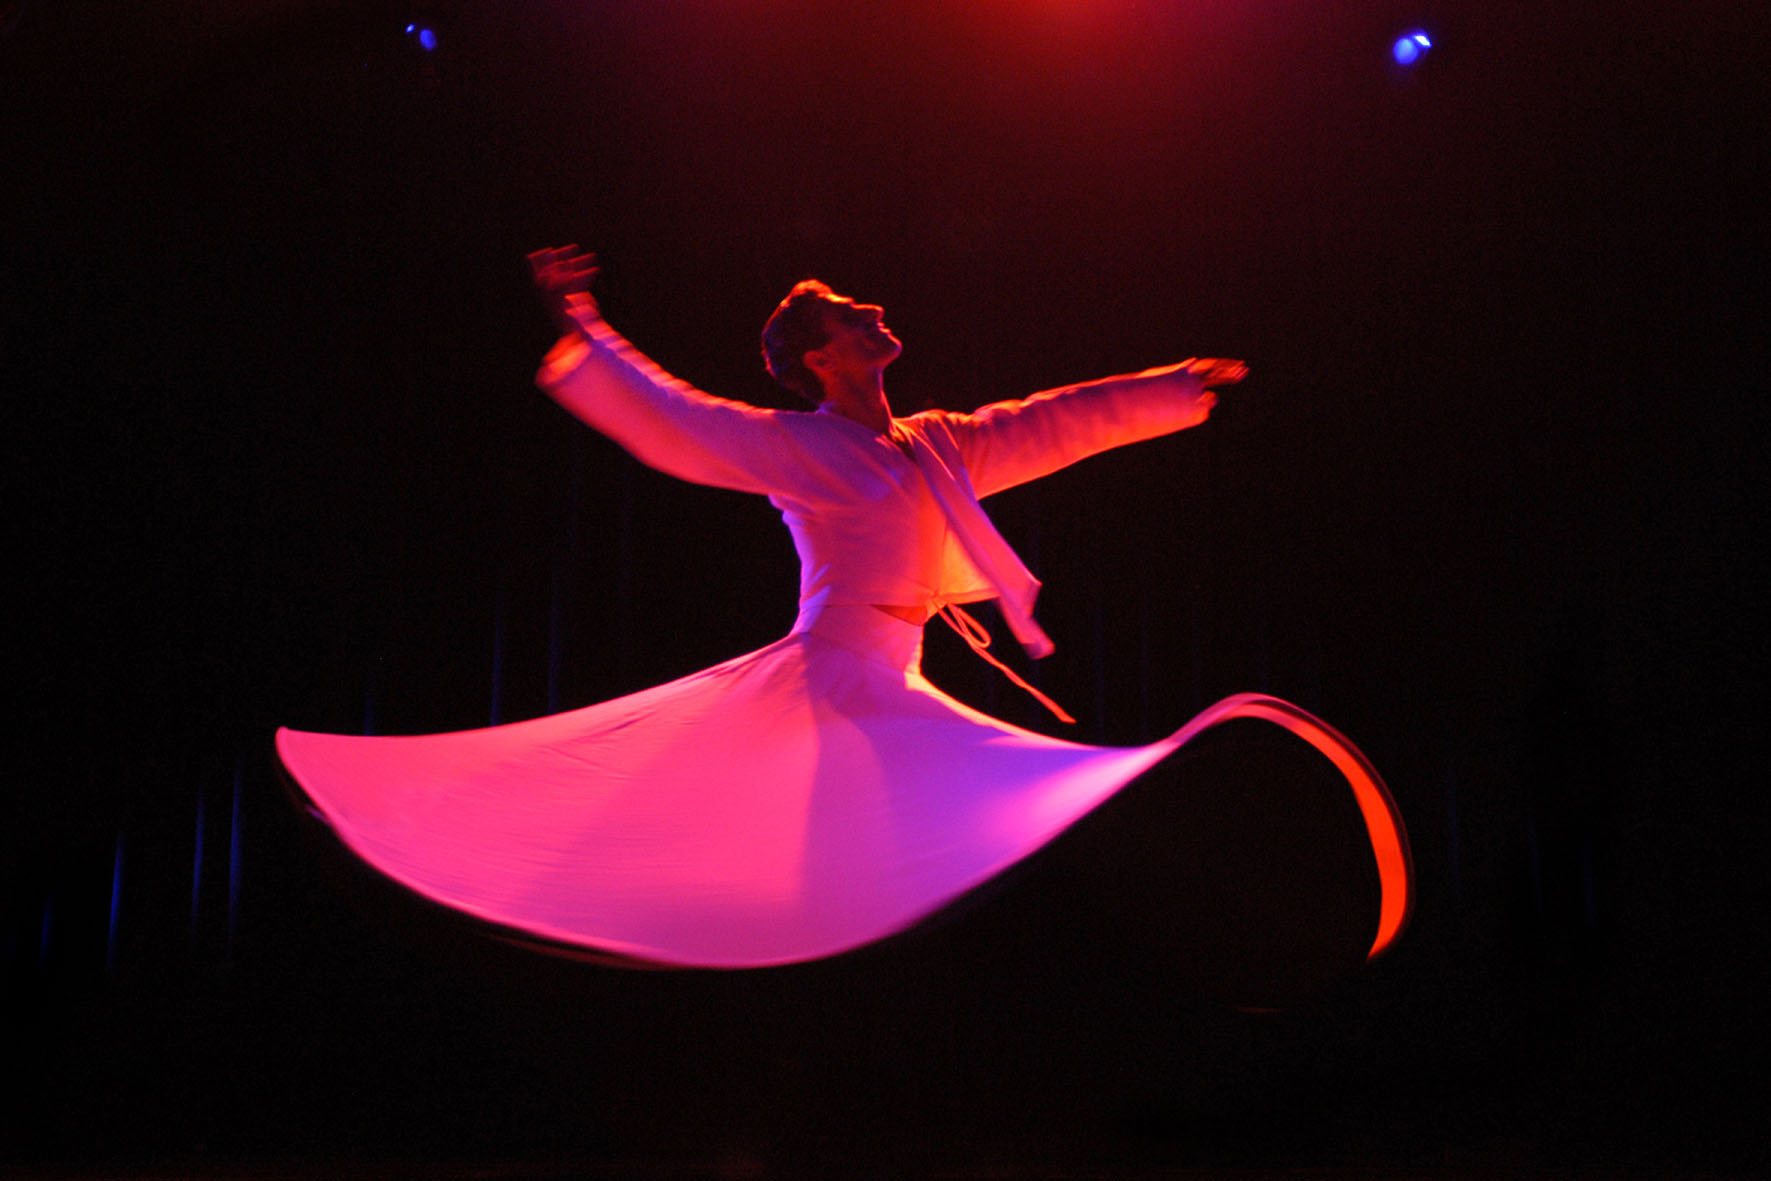 Whirling_Dervish_by_Max_Moser.jpg